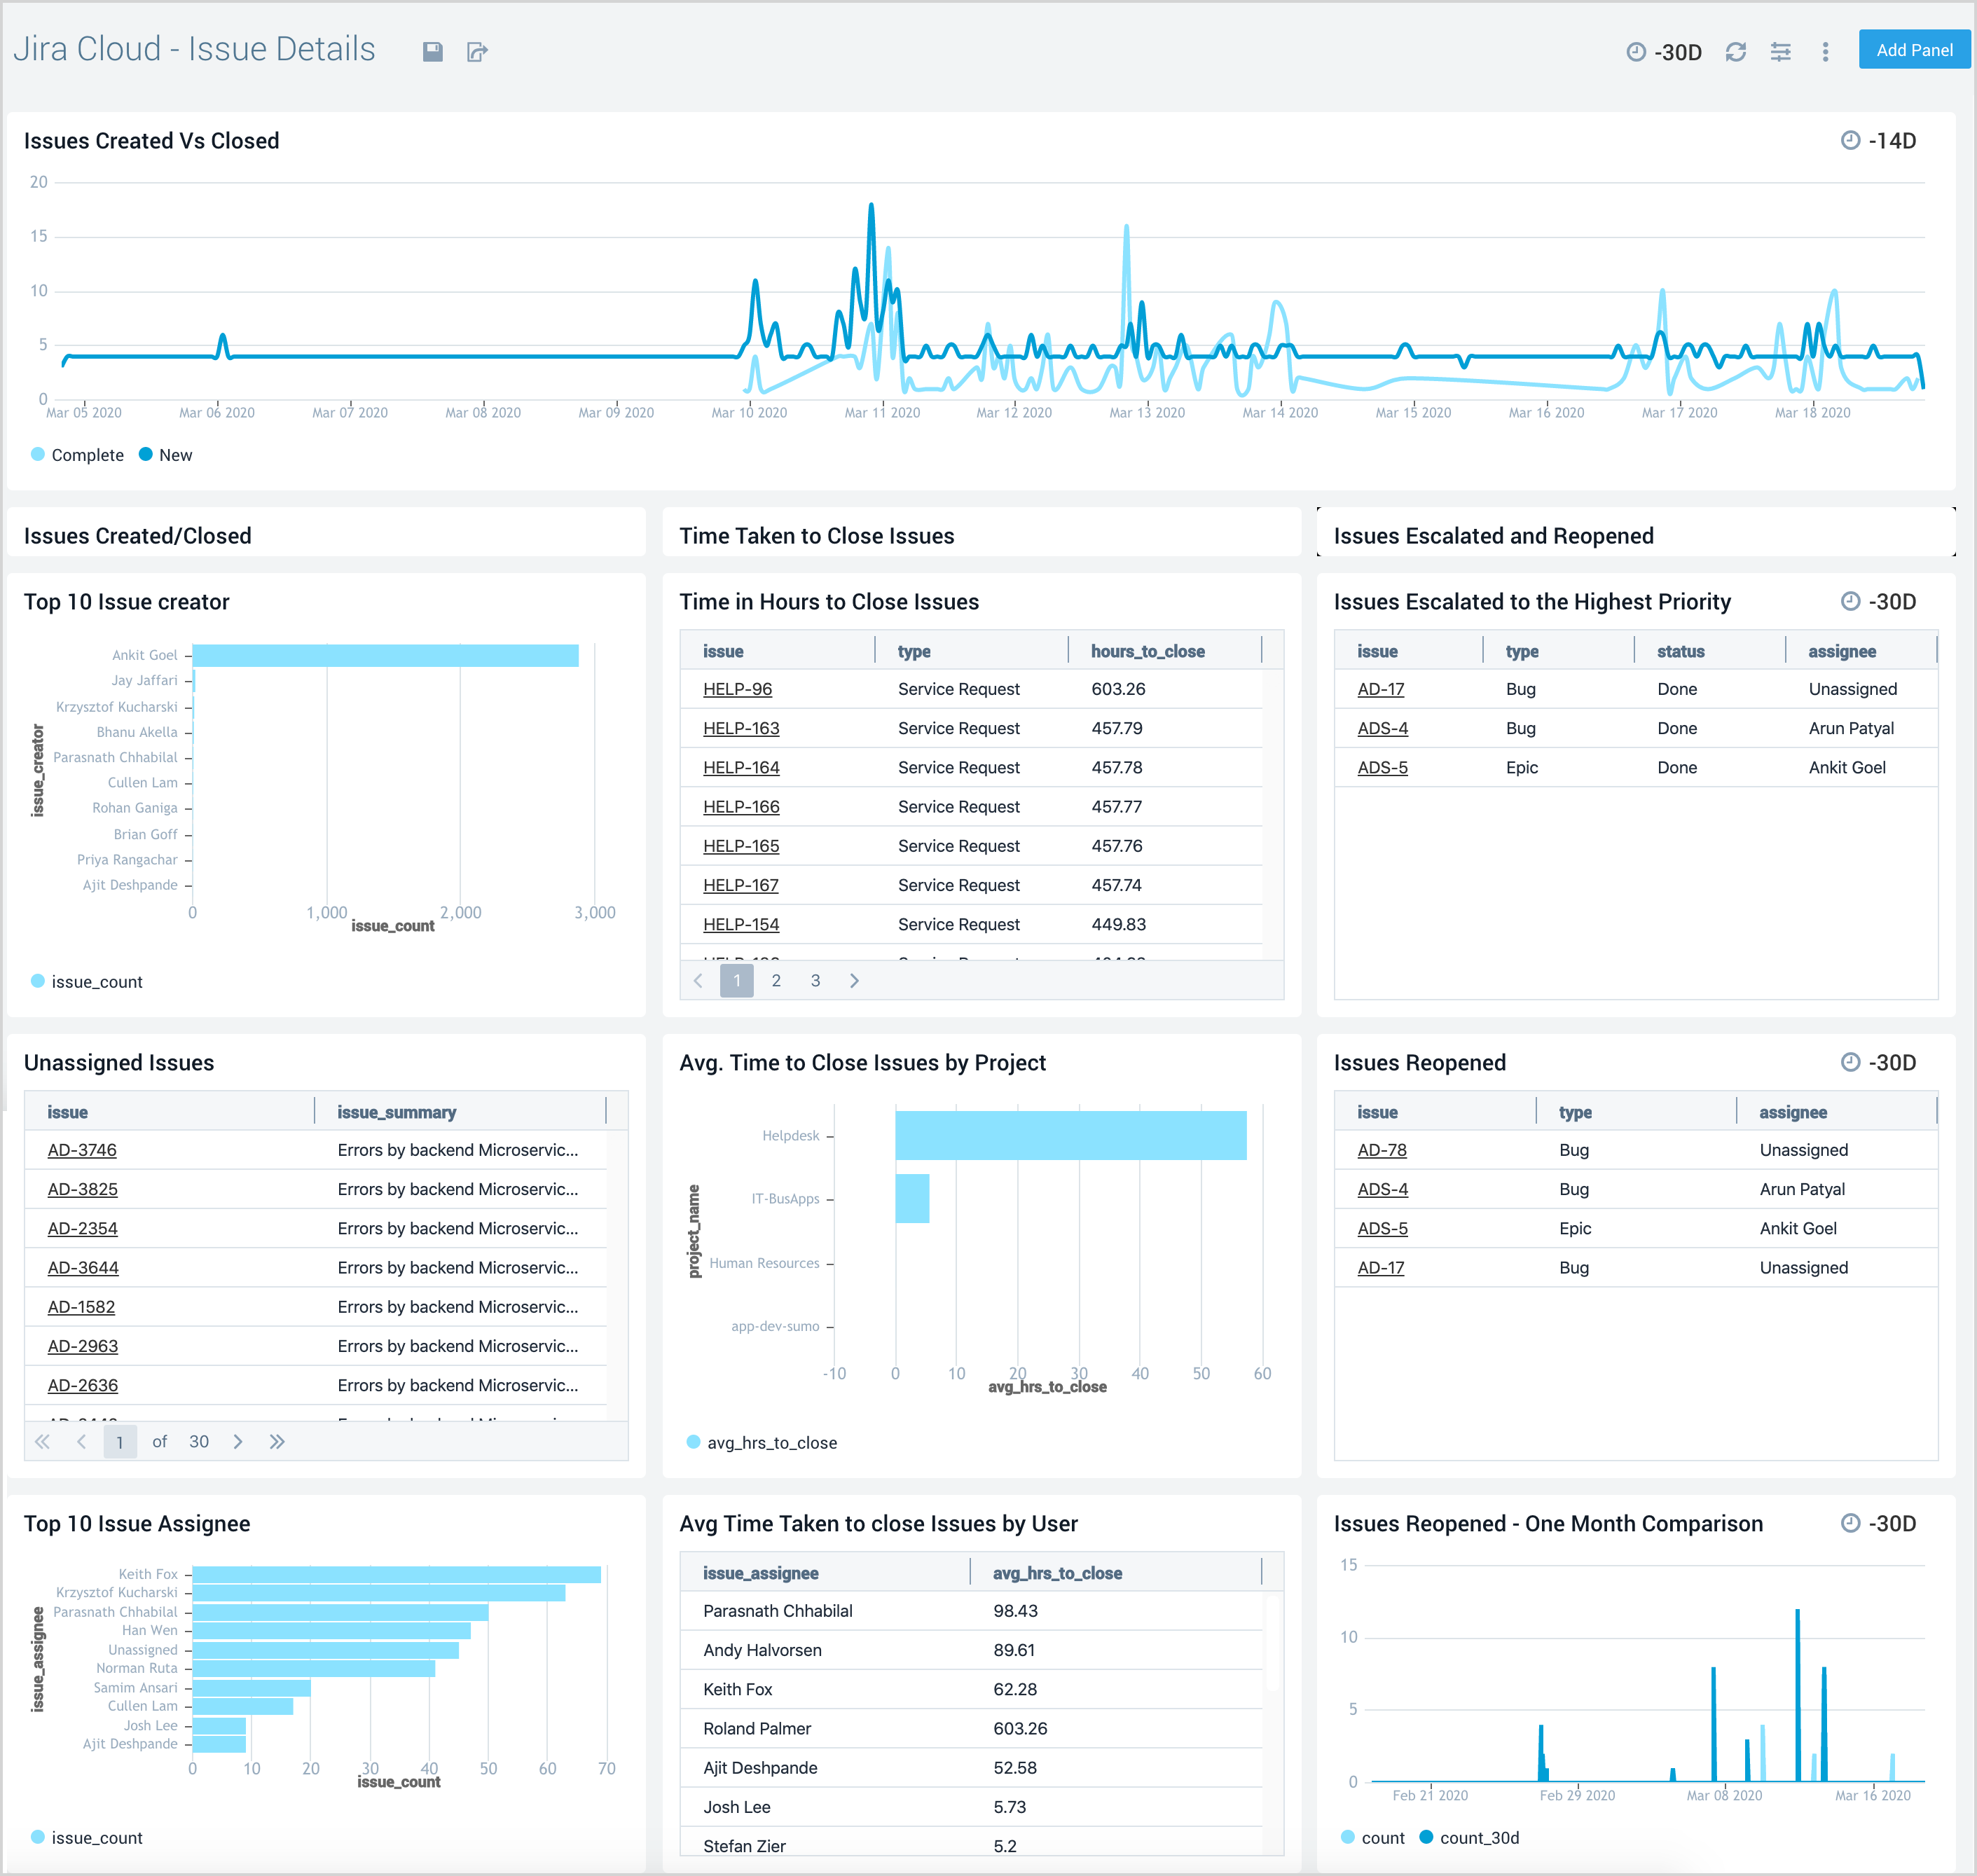 Detailed issue insights